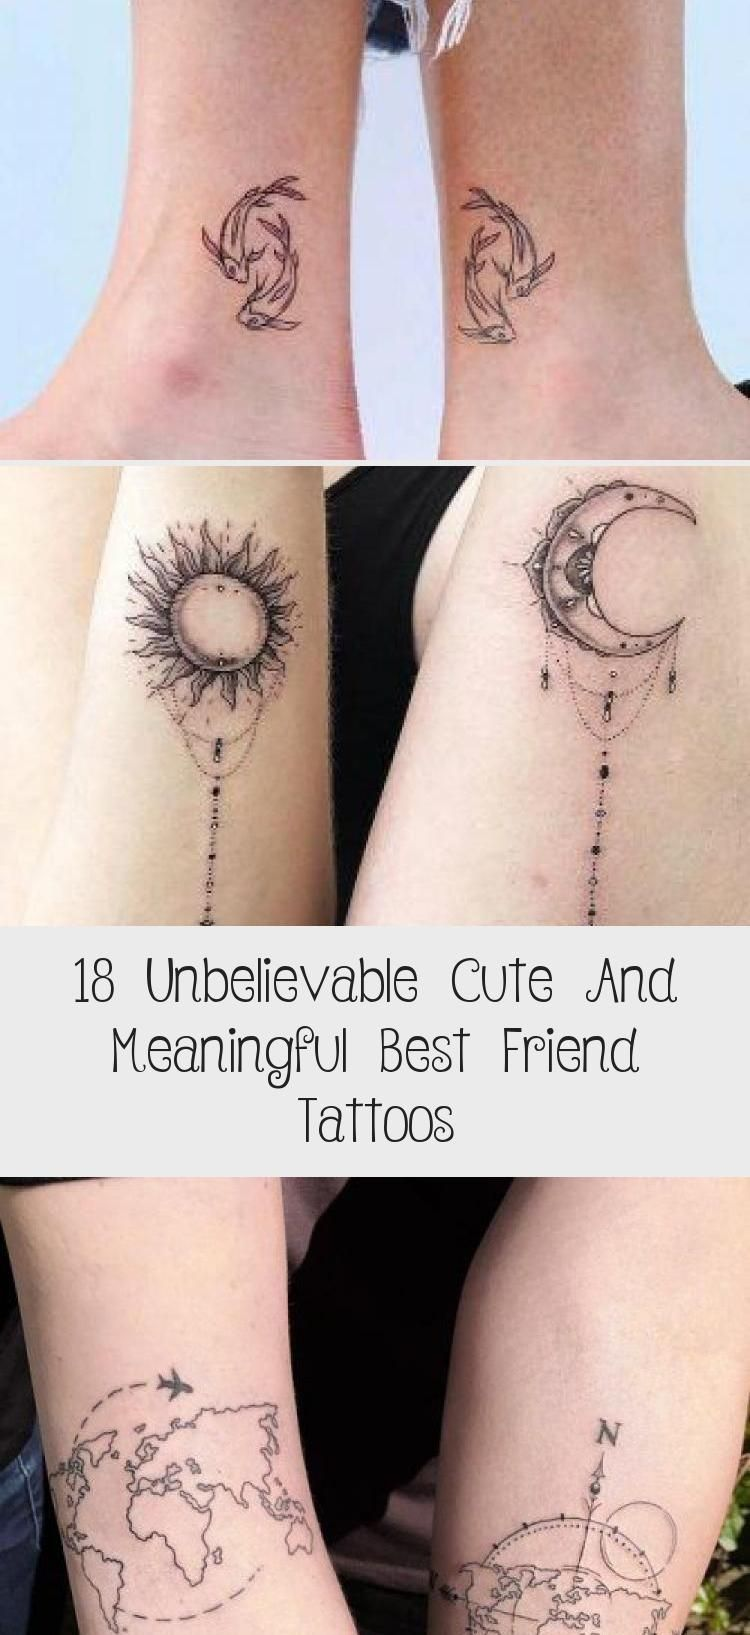 18 Unbelievable Cute And Meaningful Best Friend Tattoos – Tattoo Blog –  The Sun And The Moon Tattoos #sunandmoontattoo #suntattoo #moontattoo ★ Mat…